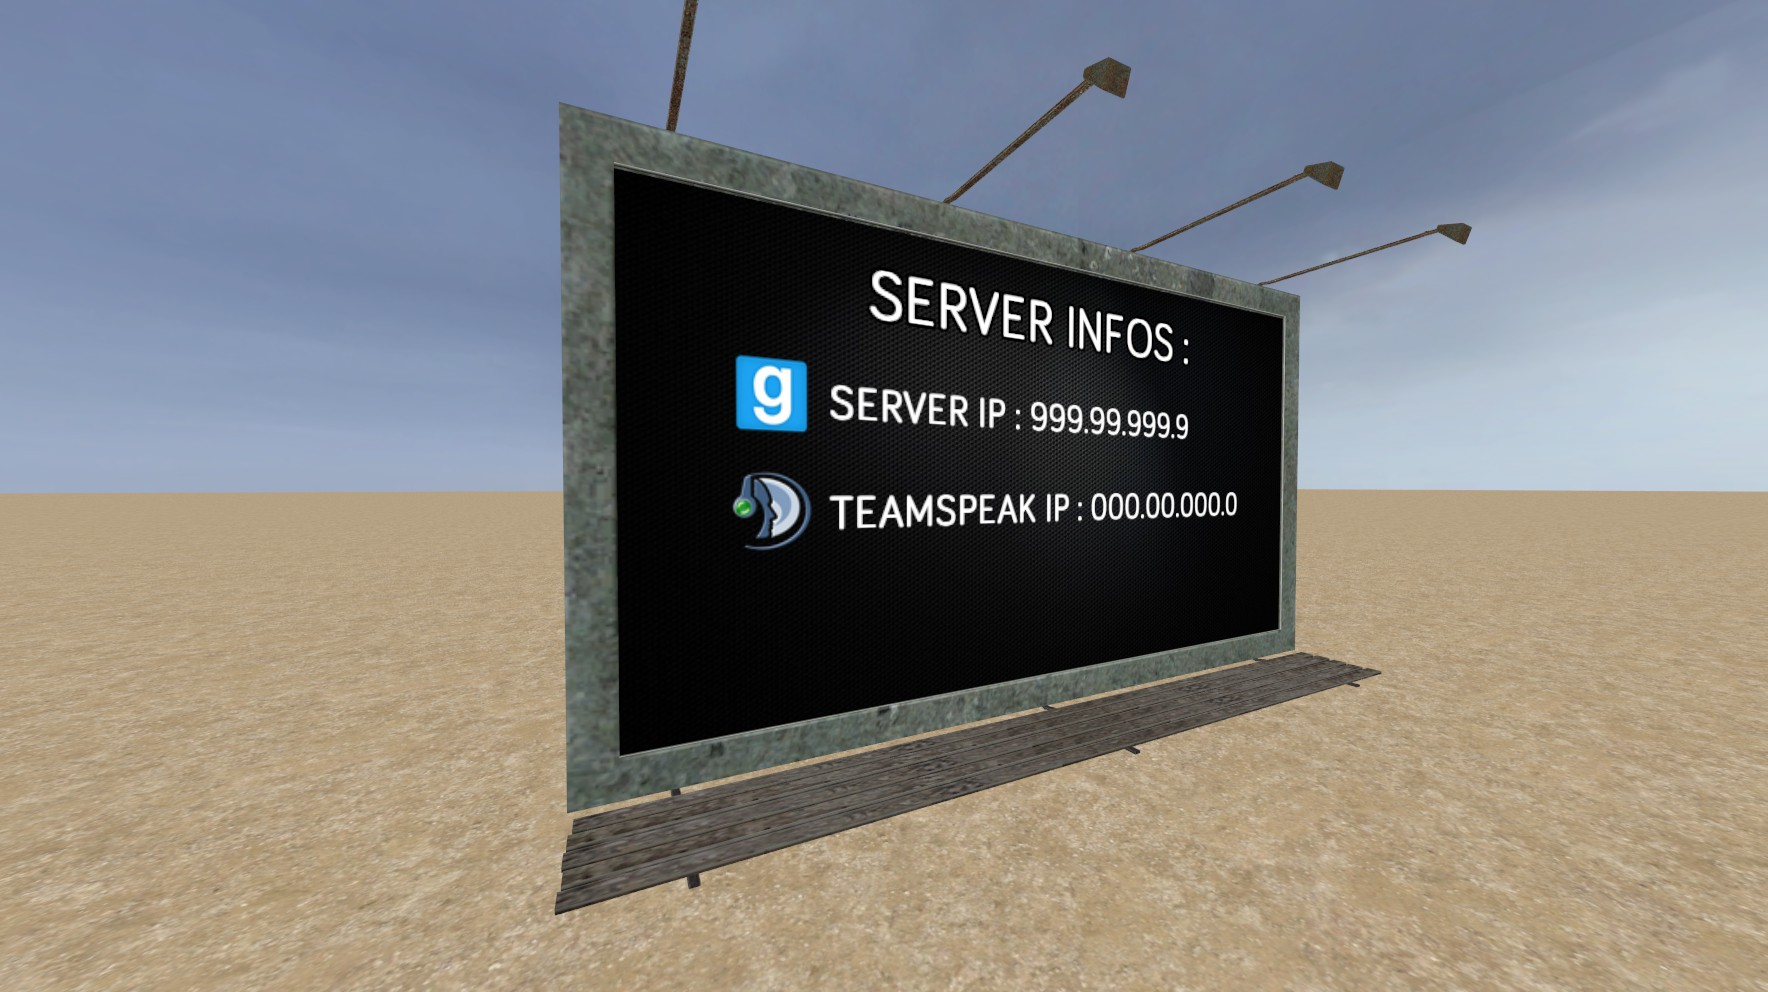 Advertisement Mod - Add realistic billboards and signs to your server